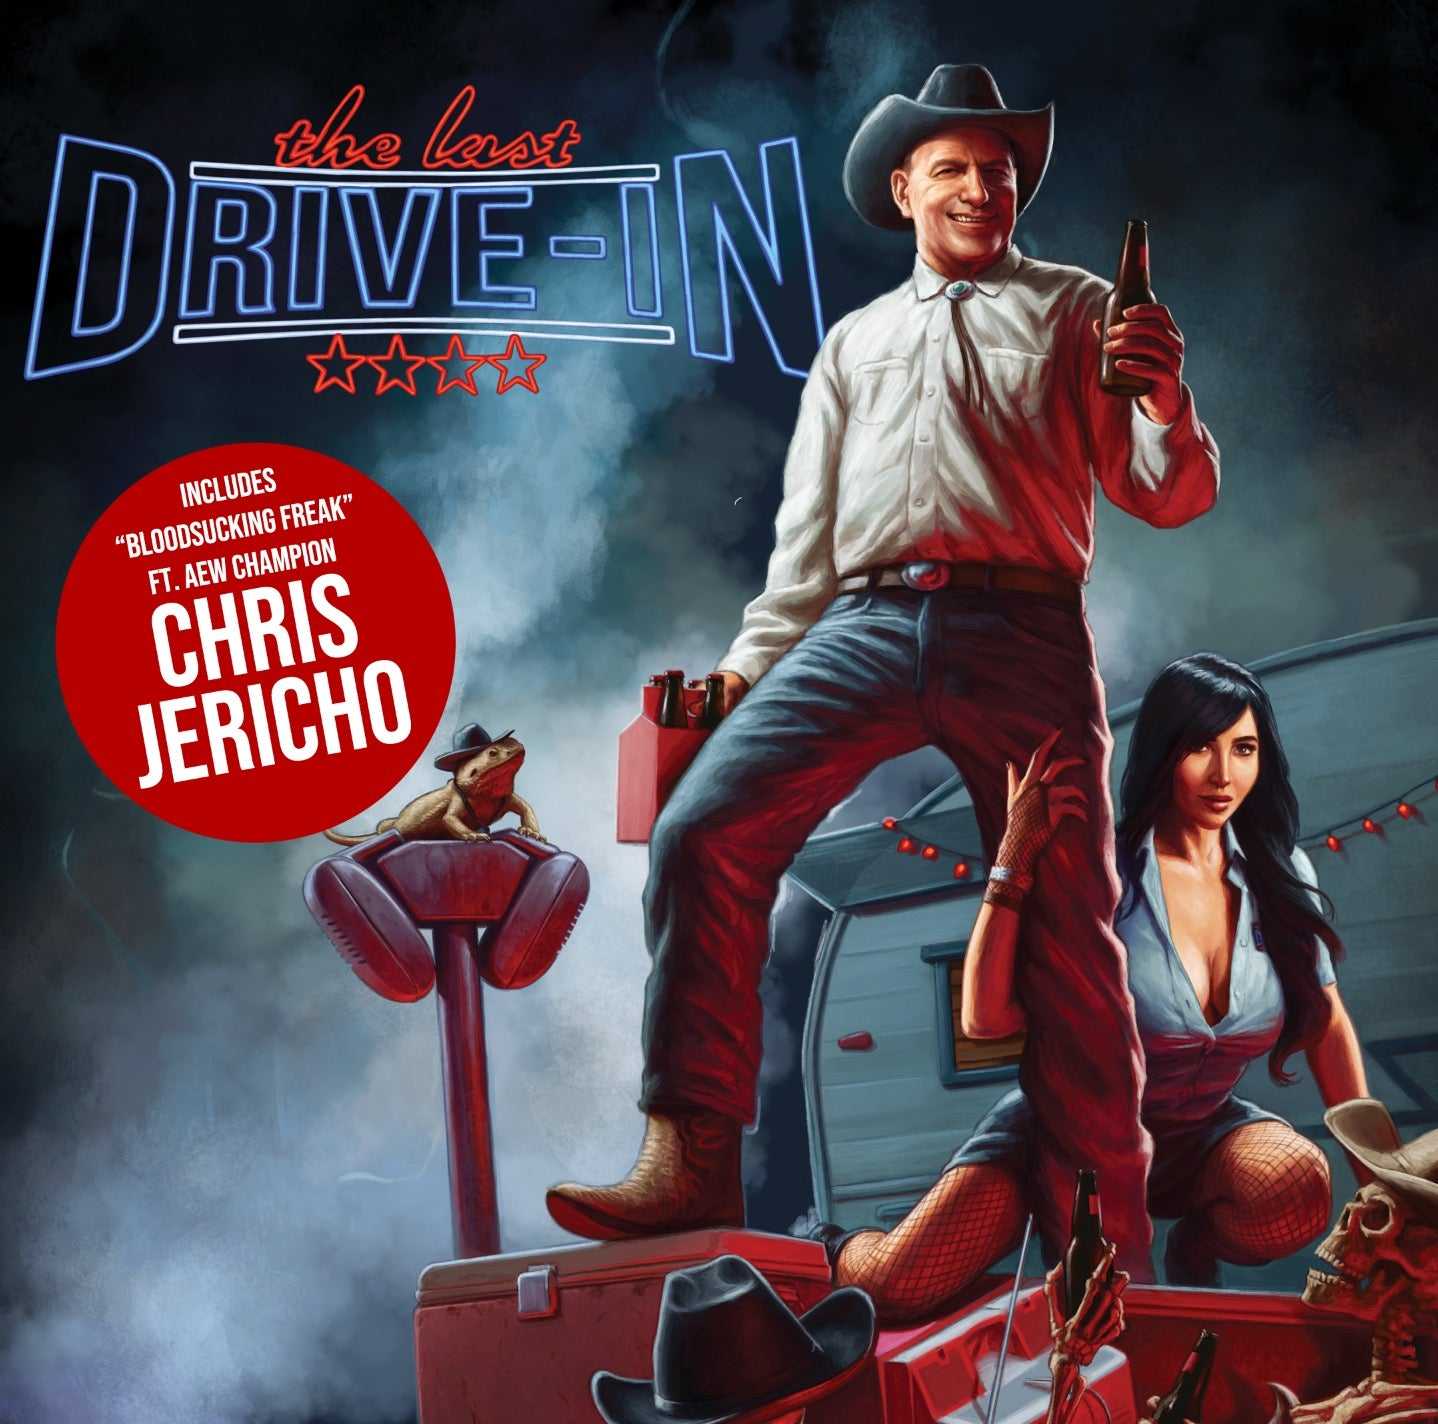 "Chris Jericho (Feat. John Brennan) - The Last Drive-In ""Bloodsucking Freak"" Soundtrack EP"